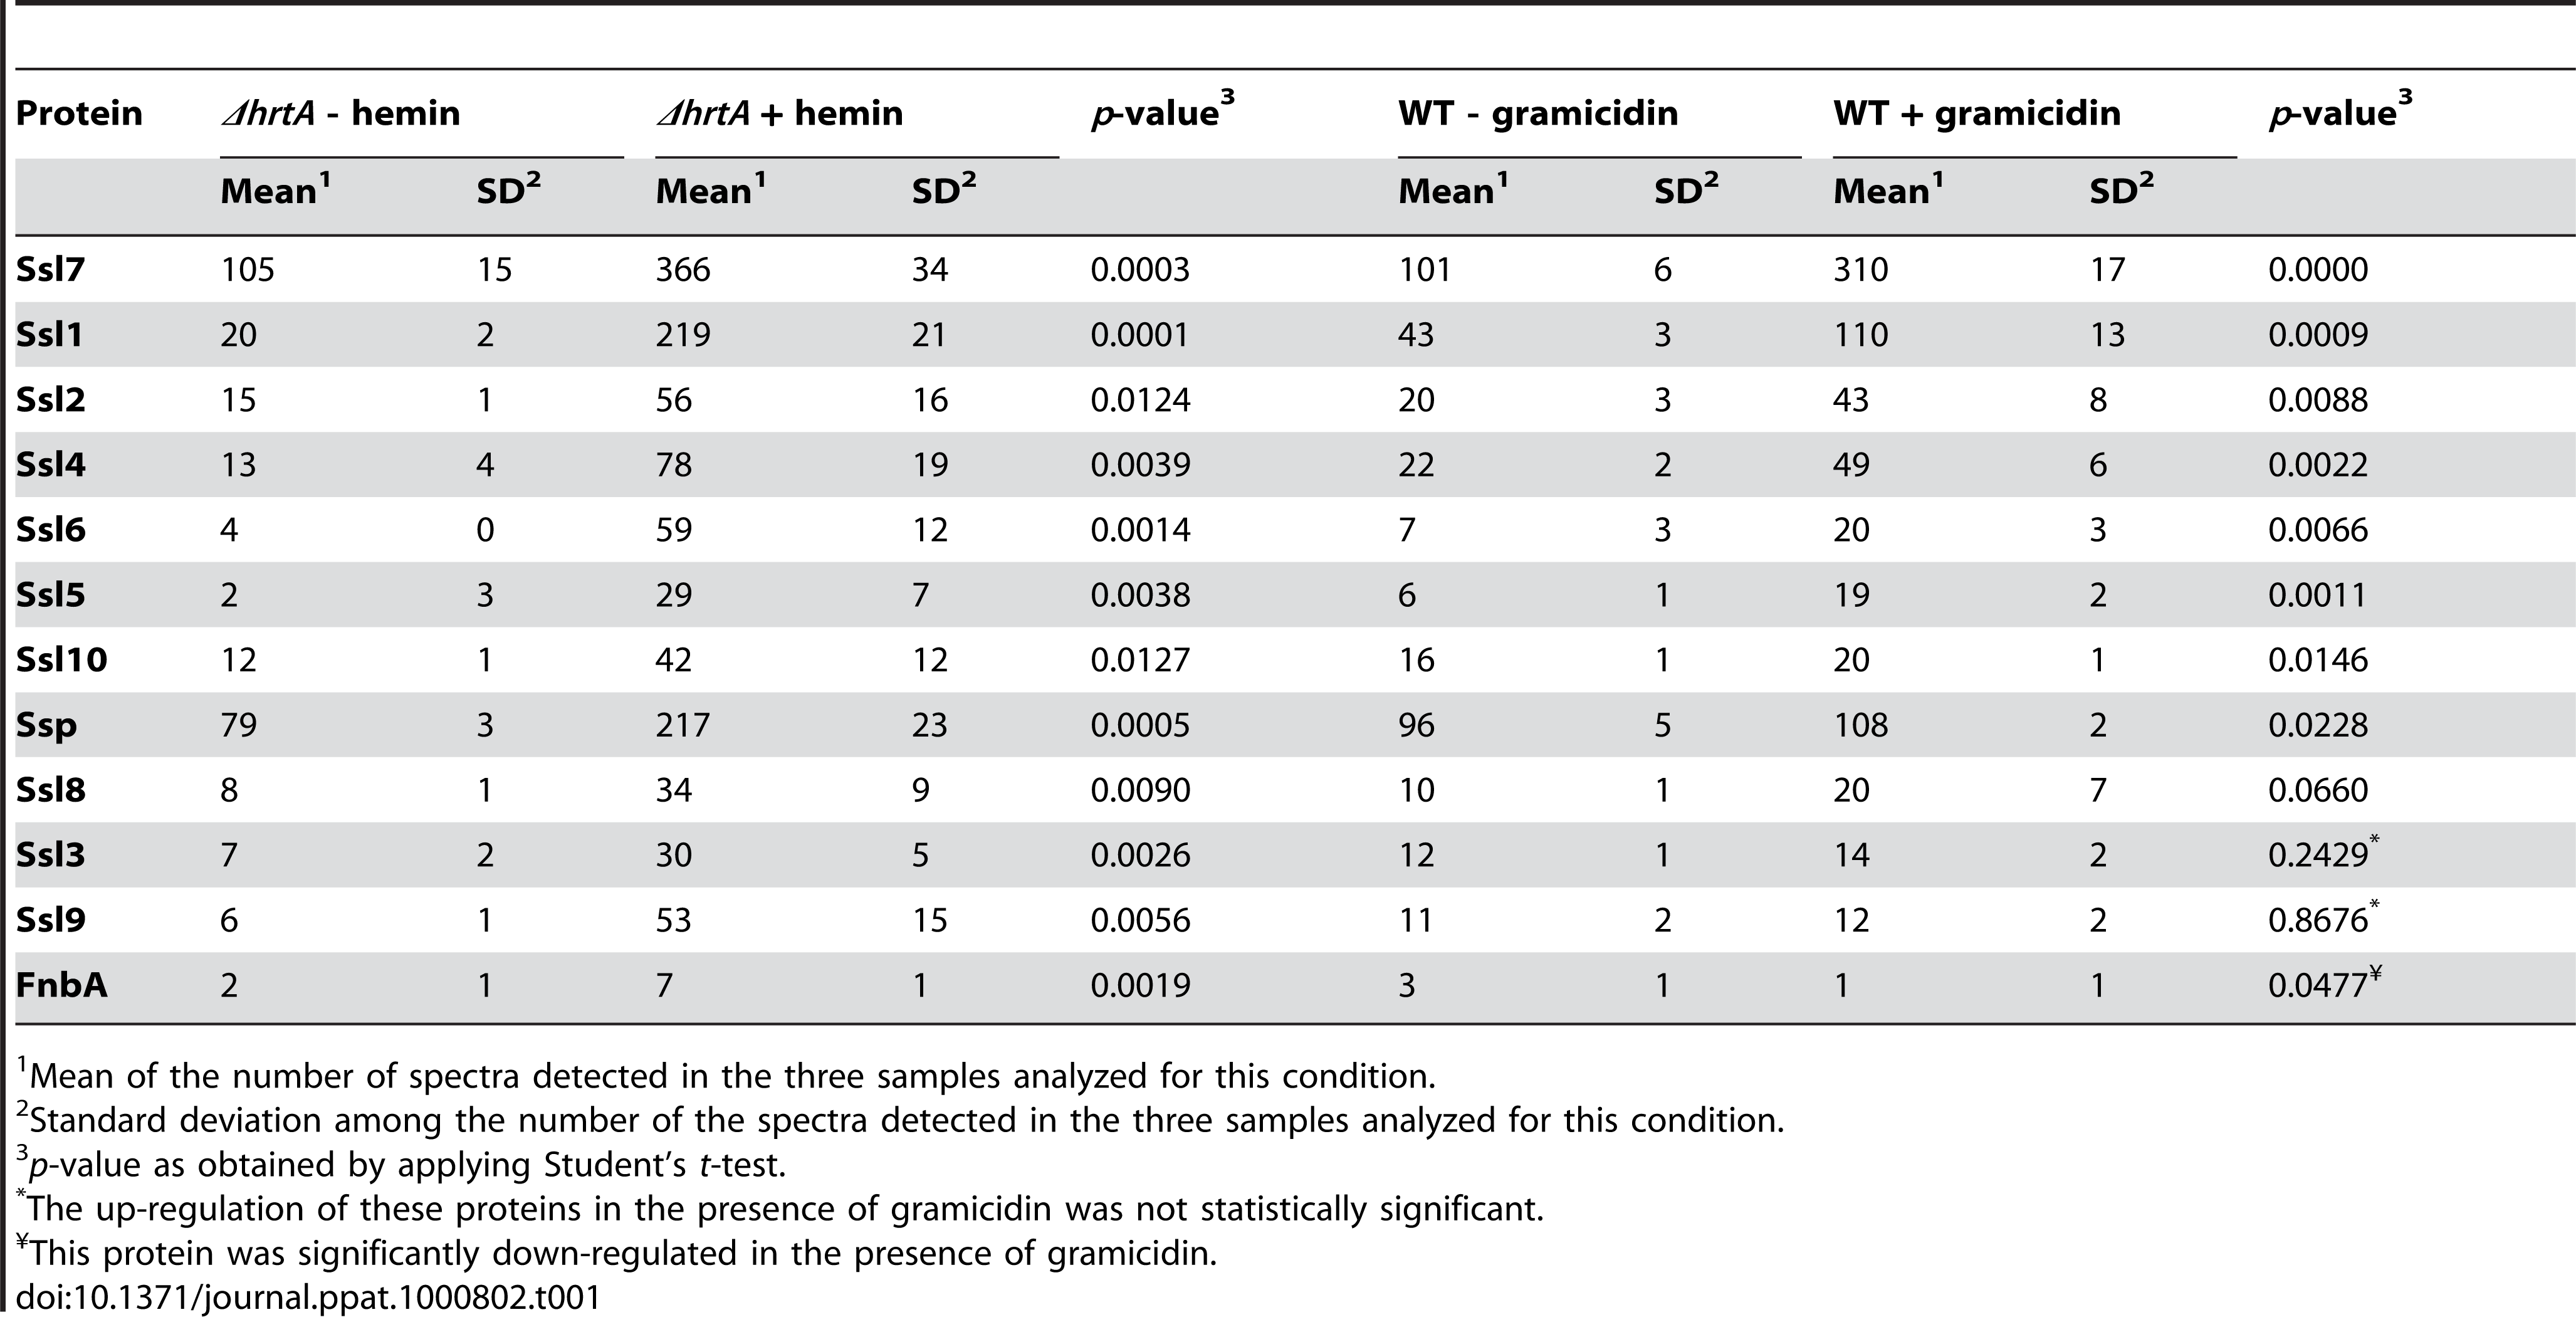 Secreted proteins up-regulated in (<i>ΔhrtA</i> + hemin) and (WT + gramicidin).